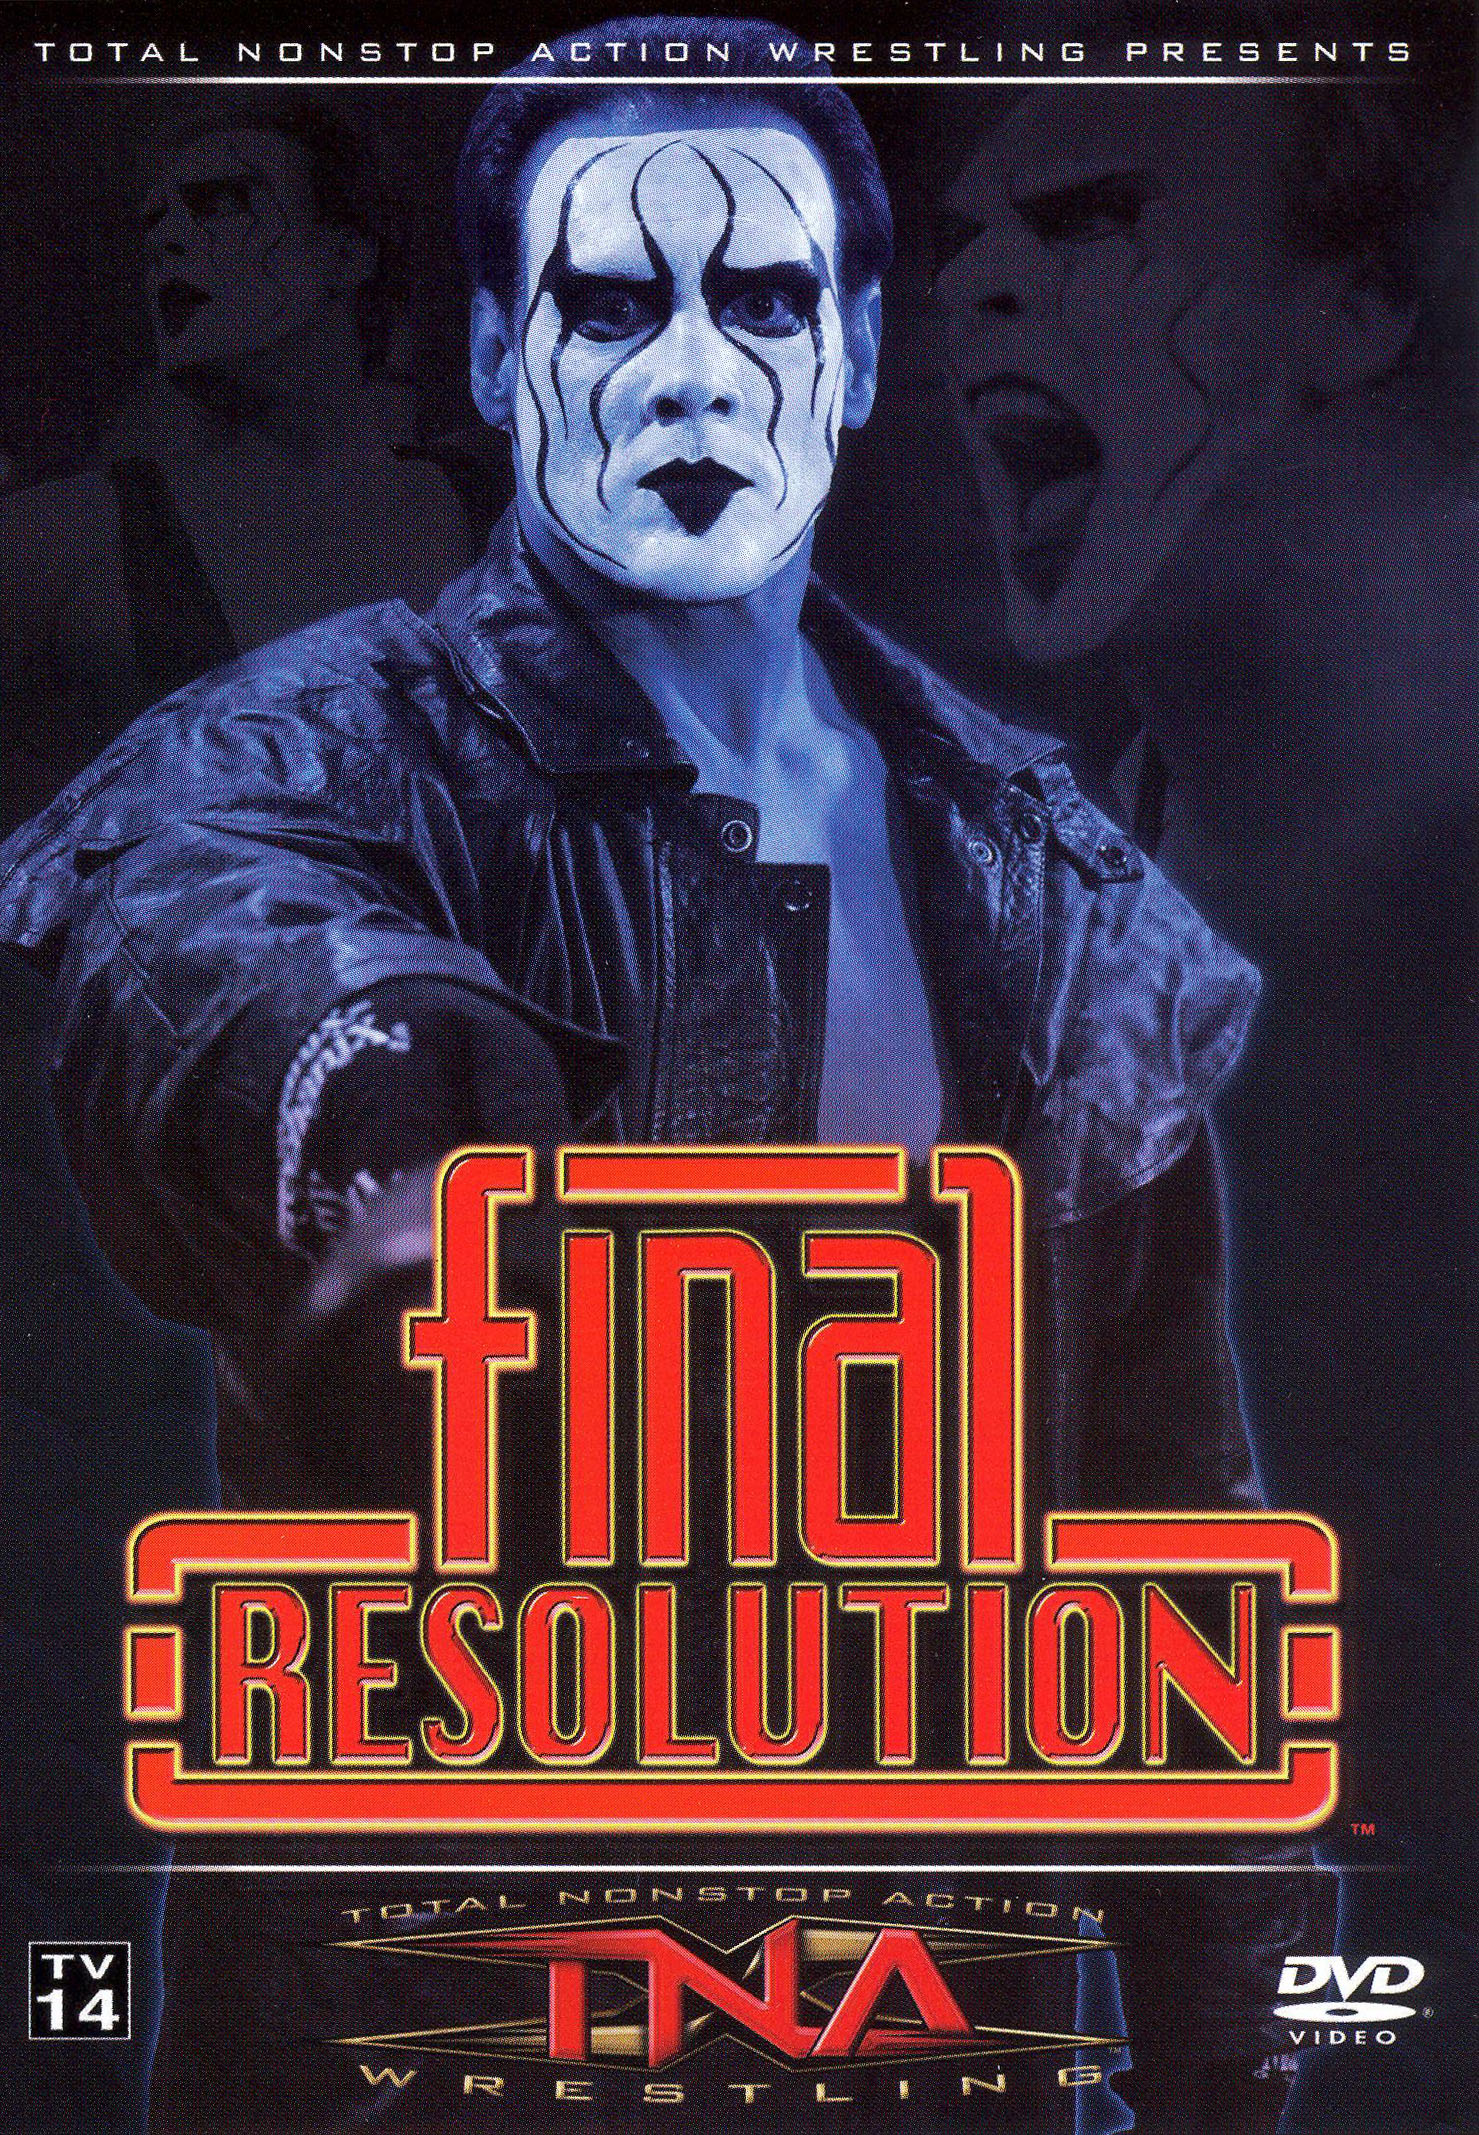 TNA Wrestling: Final Resolution 2006